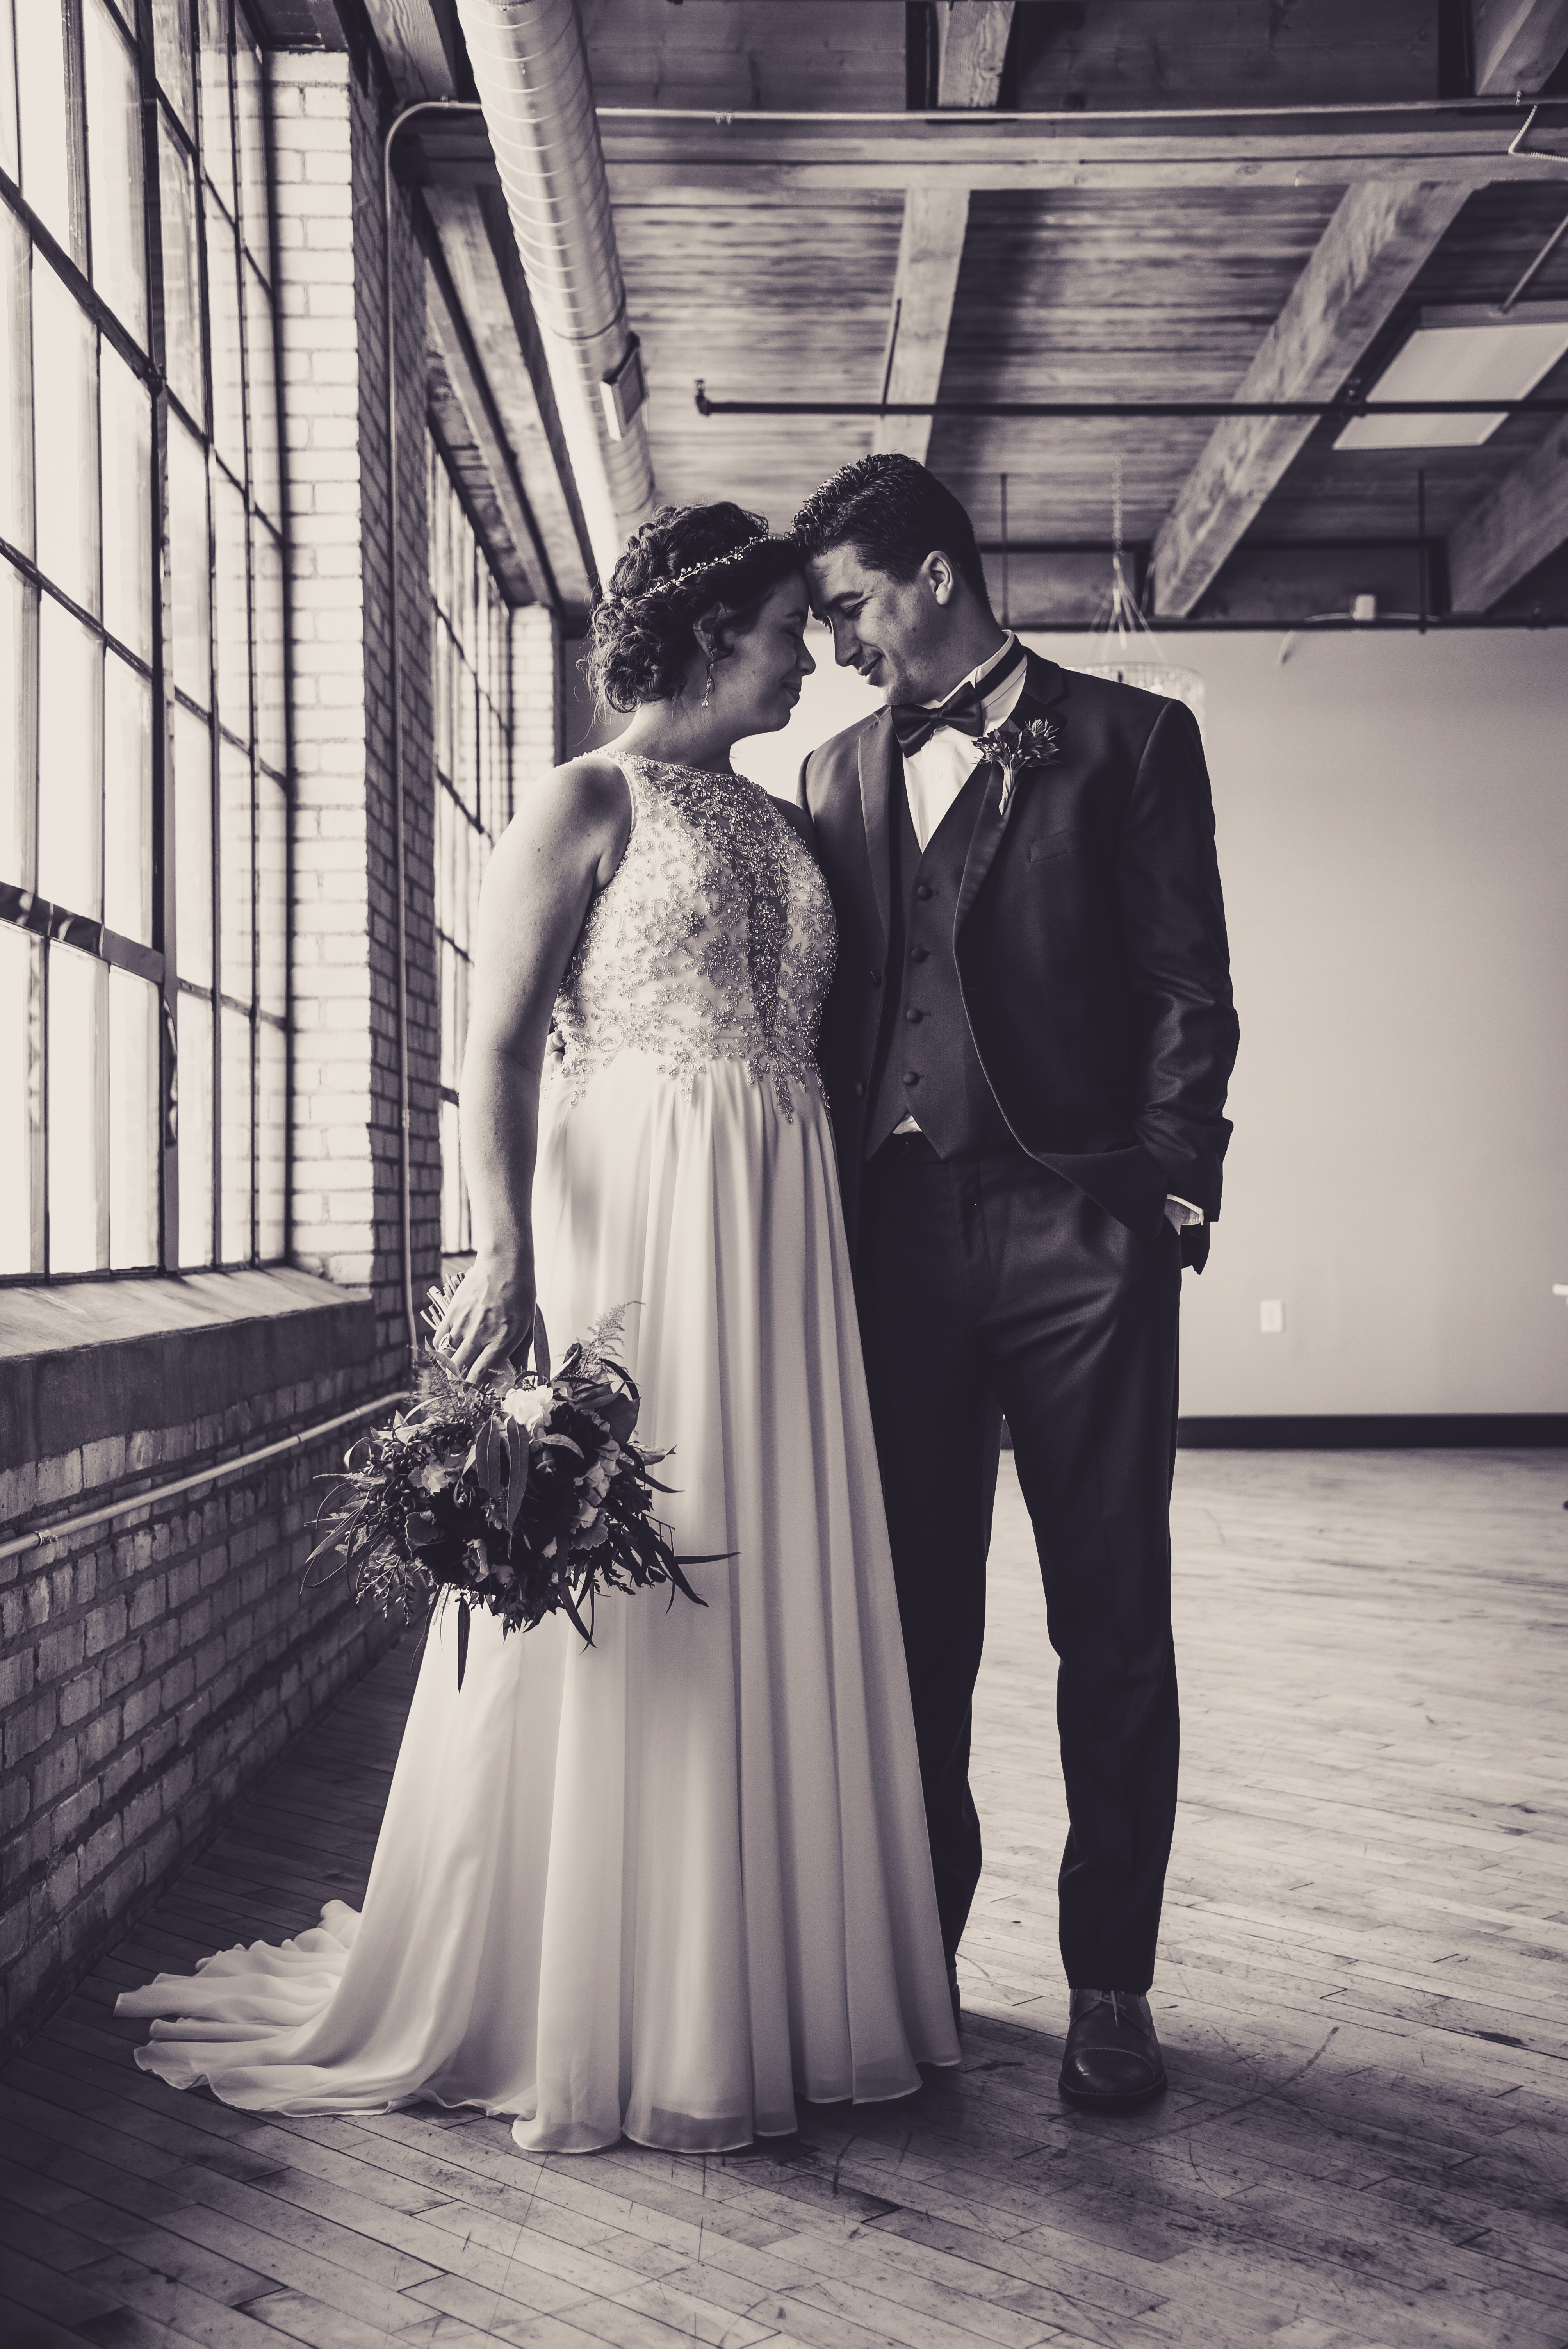 Bride and Groom together in an industrial loft venue